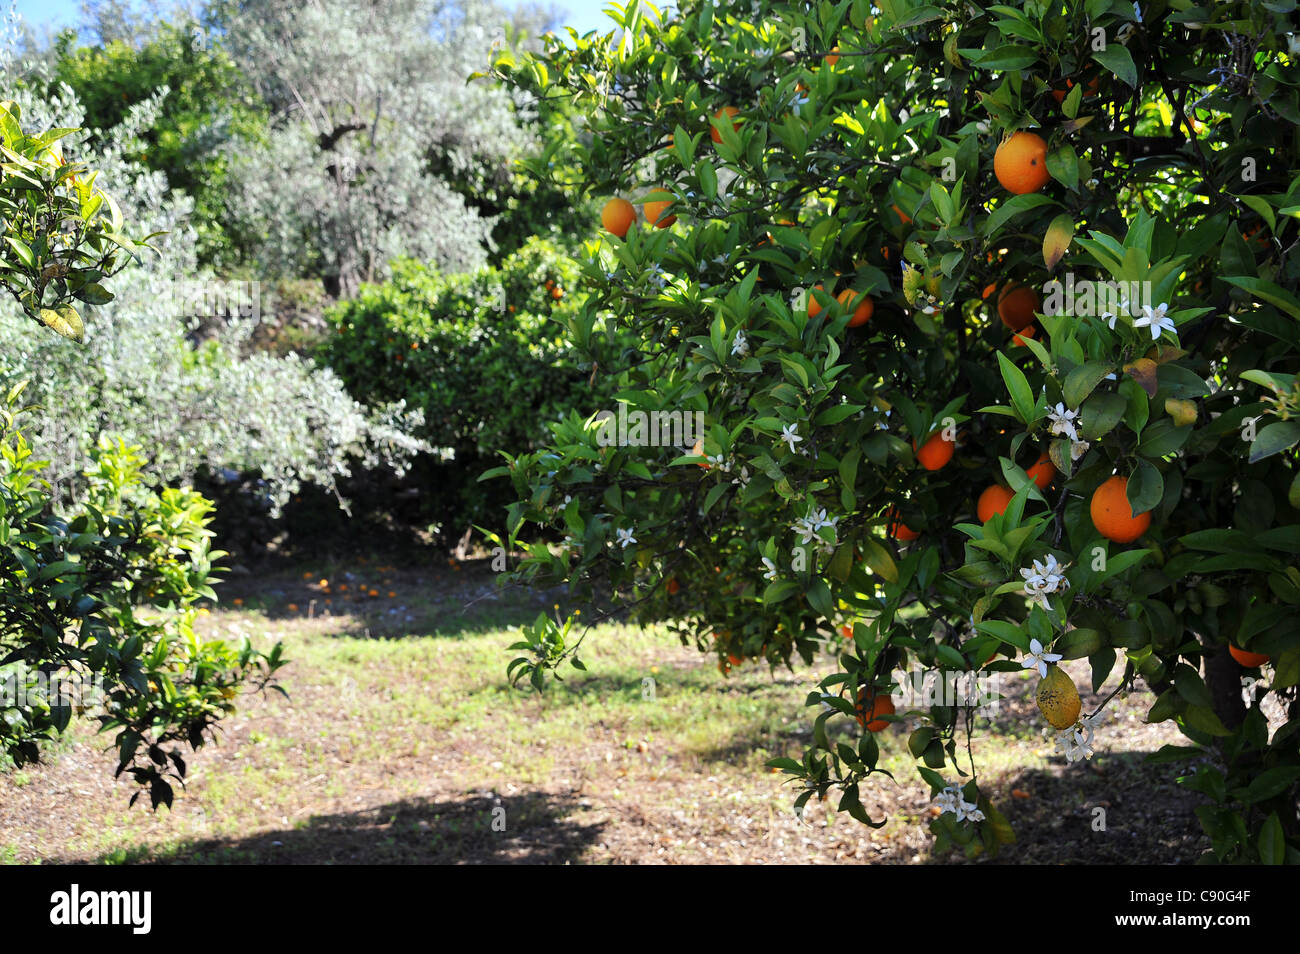 Oranges and orange blossom seen on the same tree in rural Andalusia Spain - Stock Image